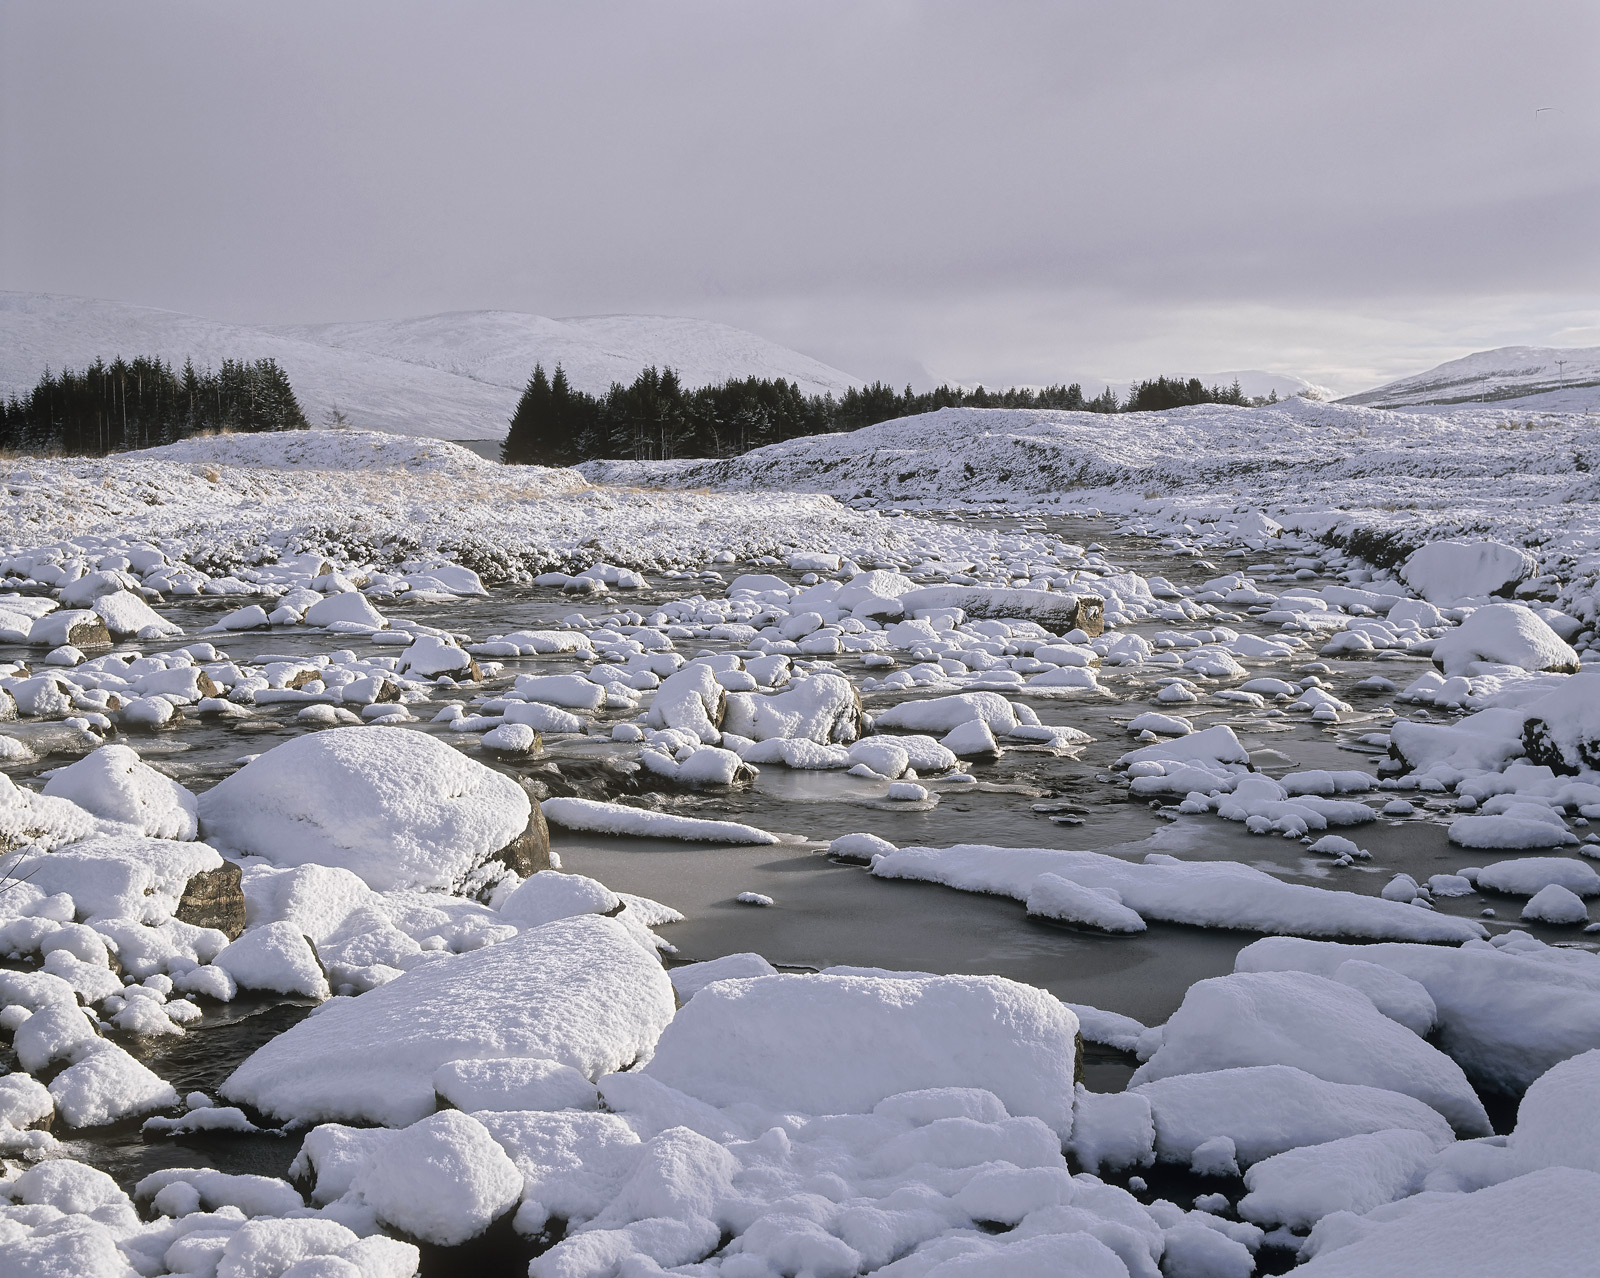 Snow layers the boulders and rocks formingsphericalmounds in the bed of ashallow stream that tumbles down the...